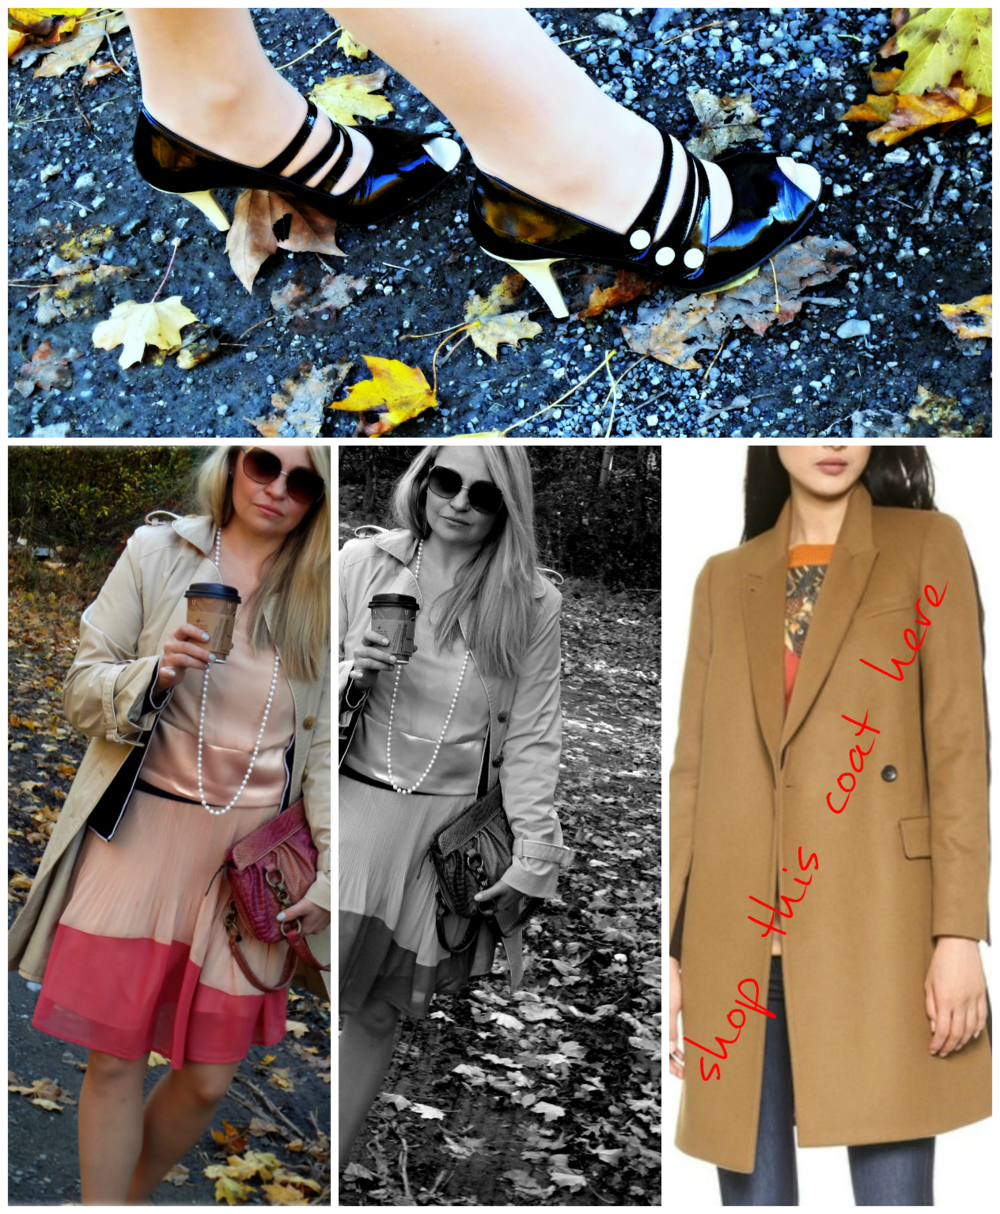 As an alternative I found this super playful Paul Smith color block coat. You can see and shop it here.